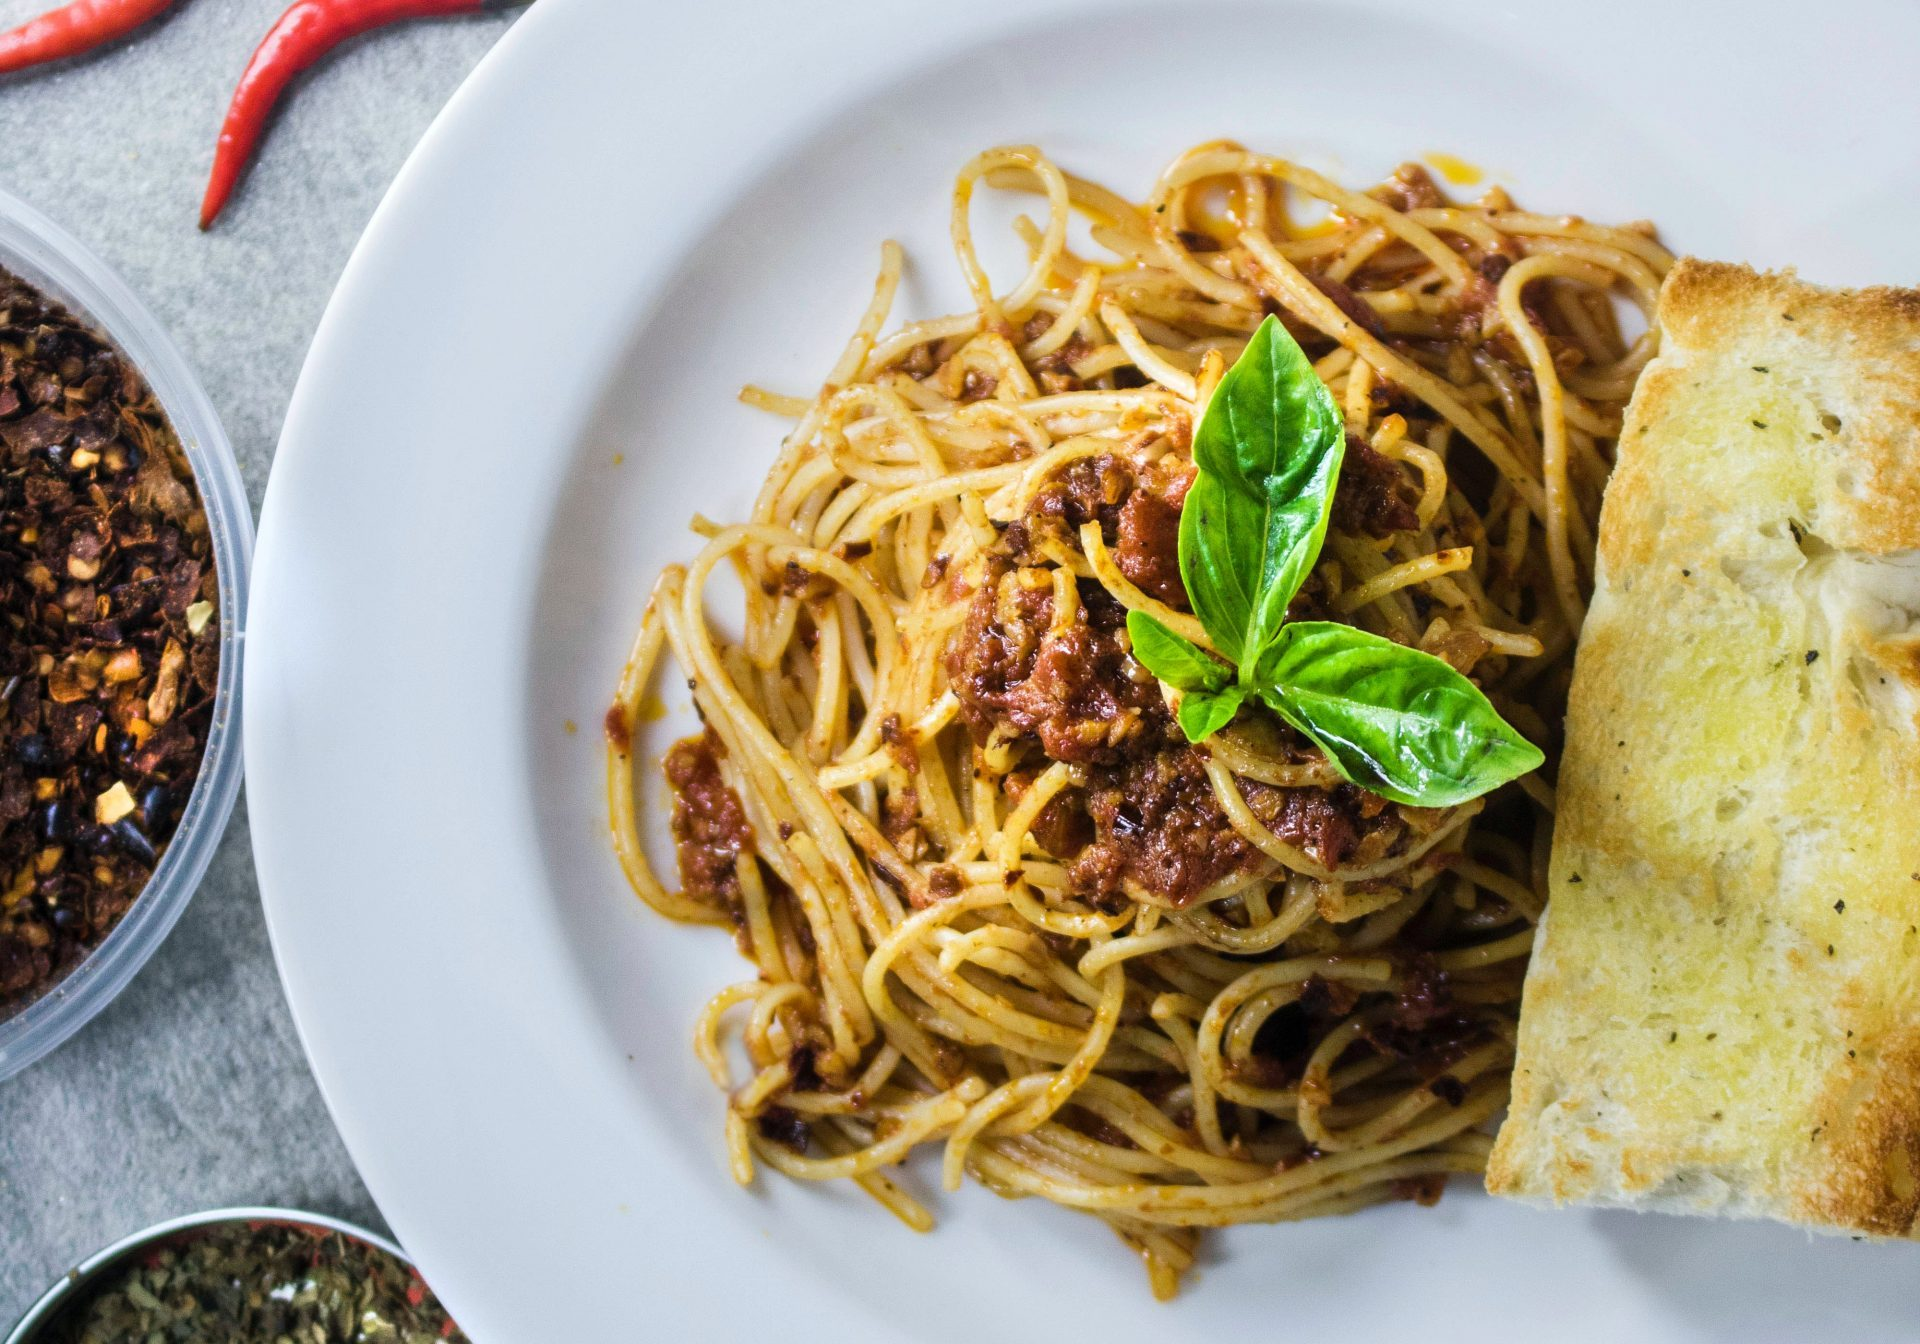 Spaghetti with a brown sauce and some herbs and bread on a white plate